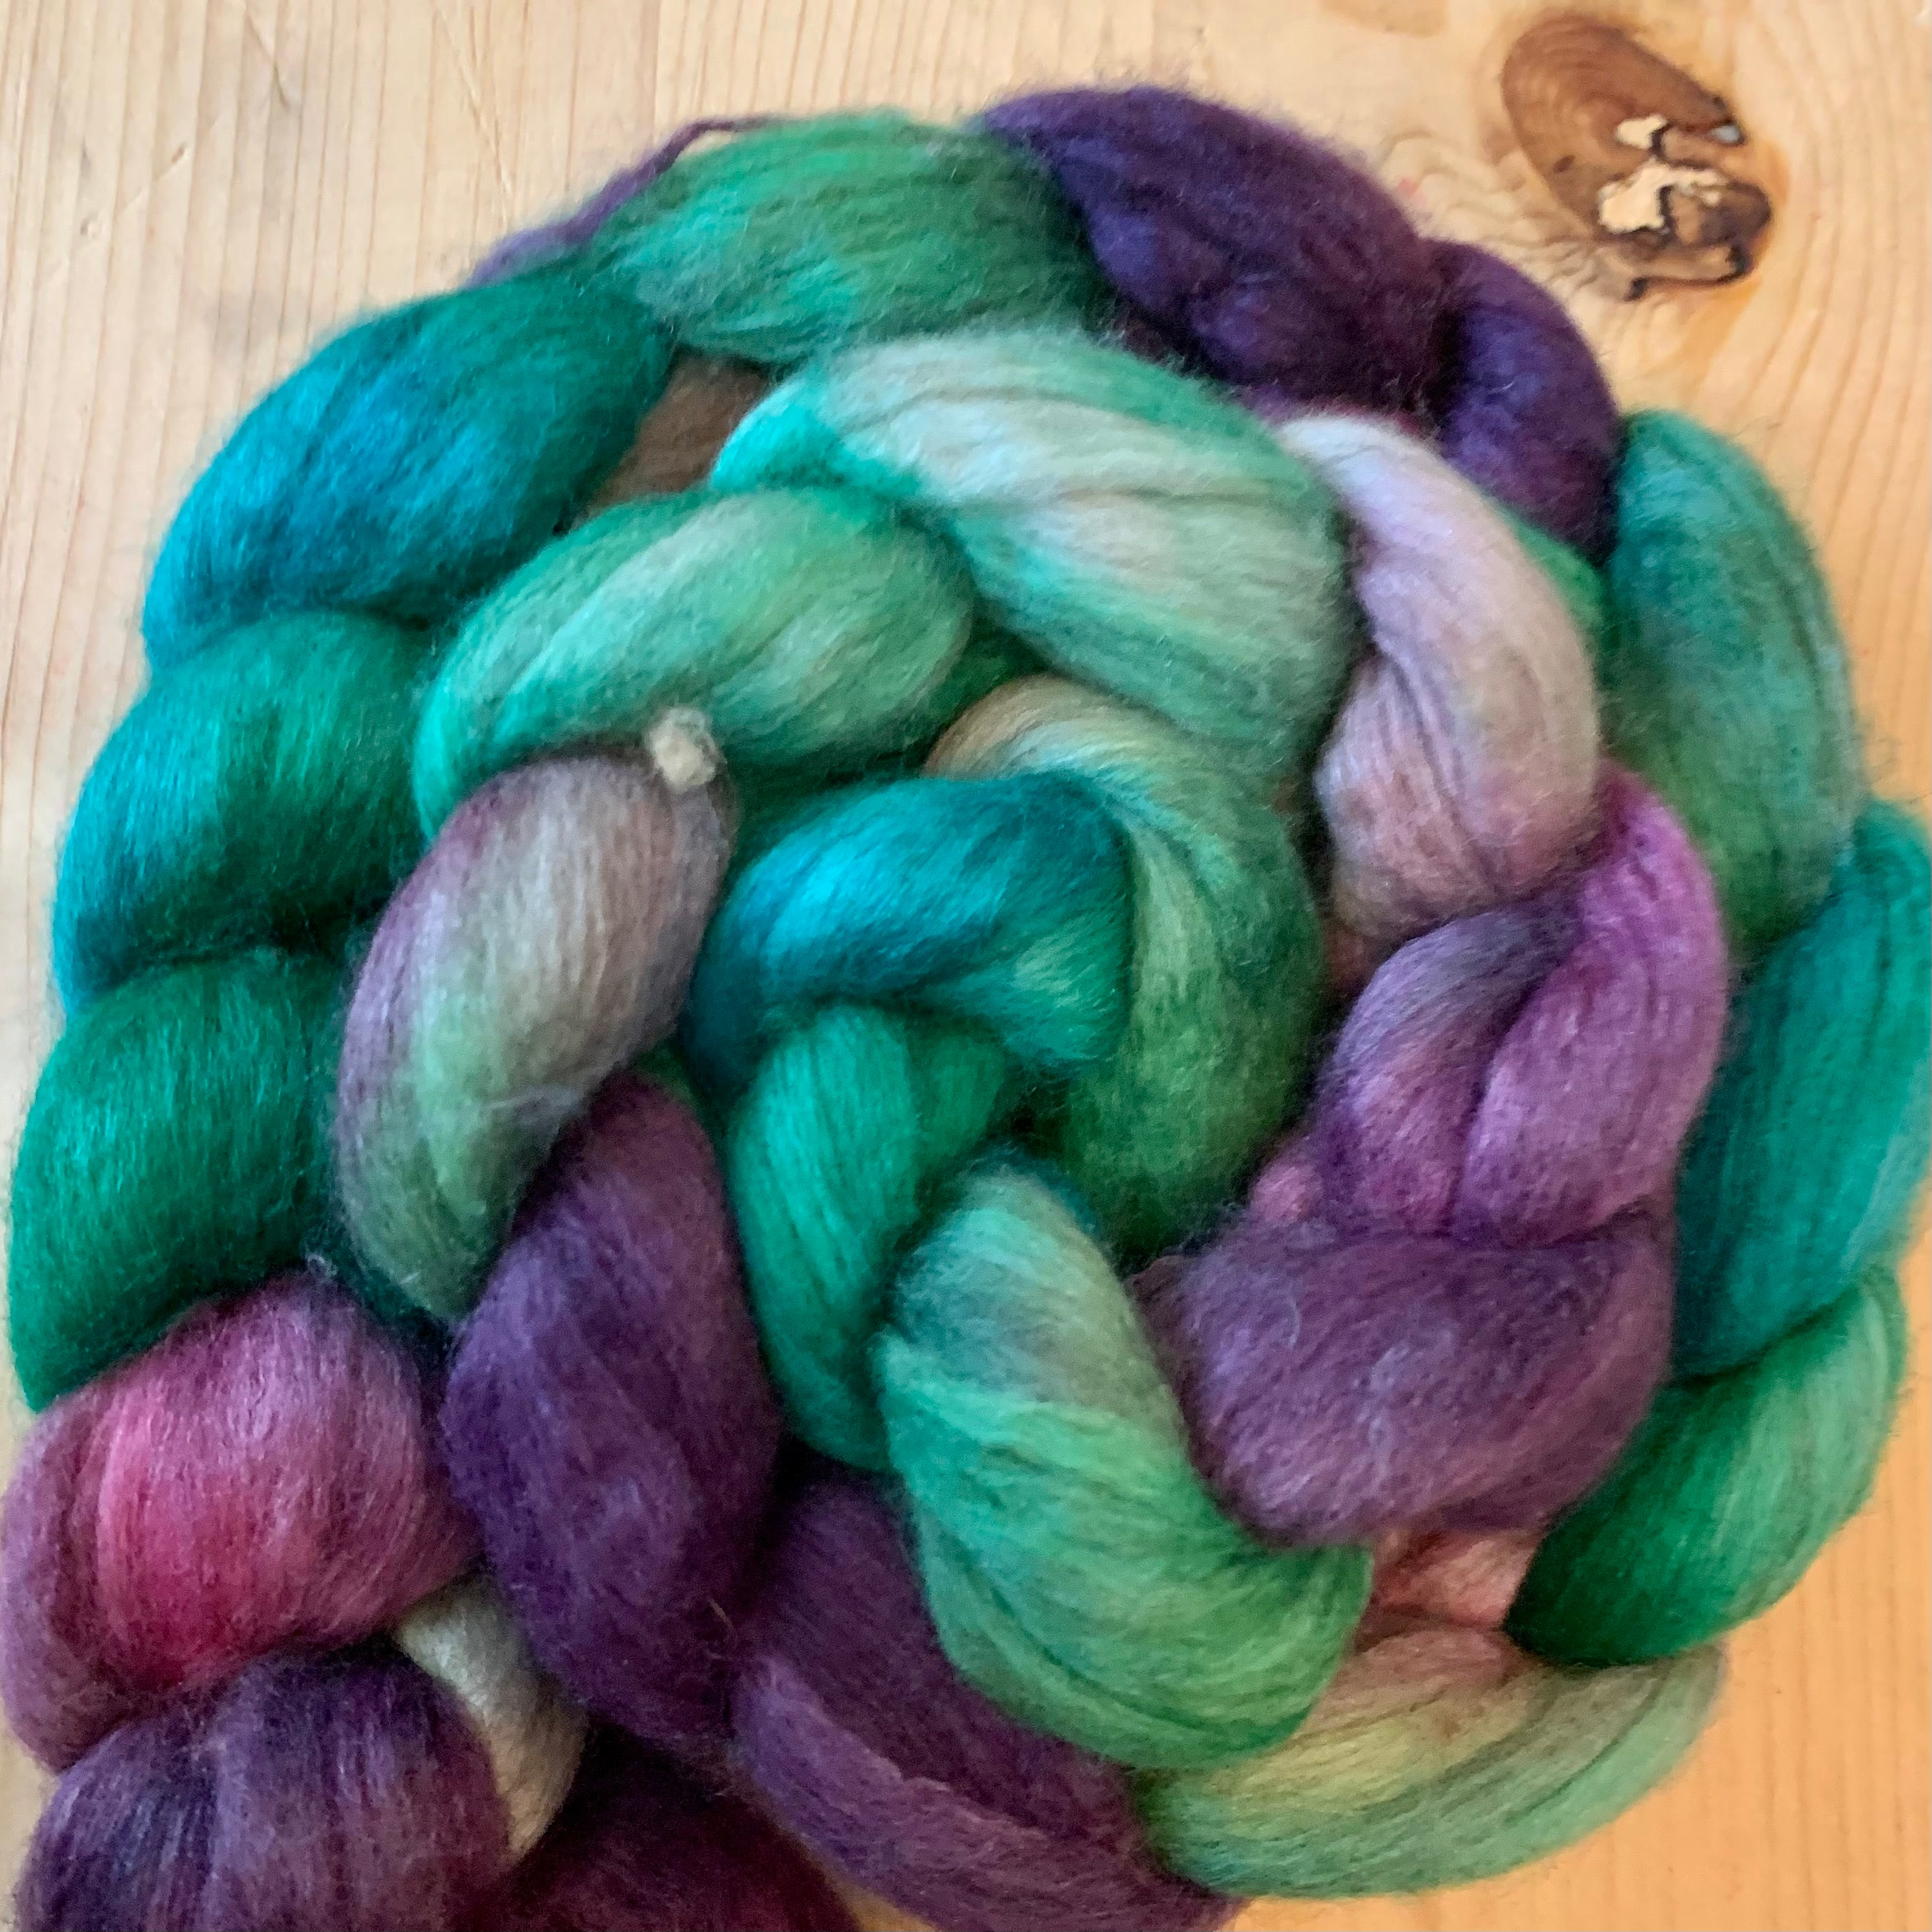 Merino, Yak, and Silk Fiber